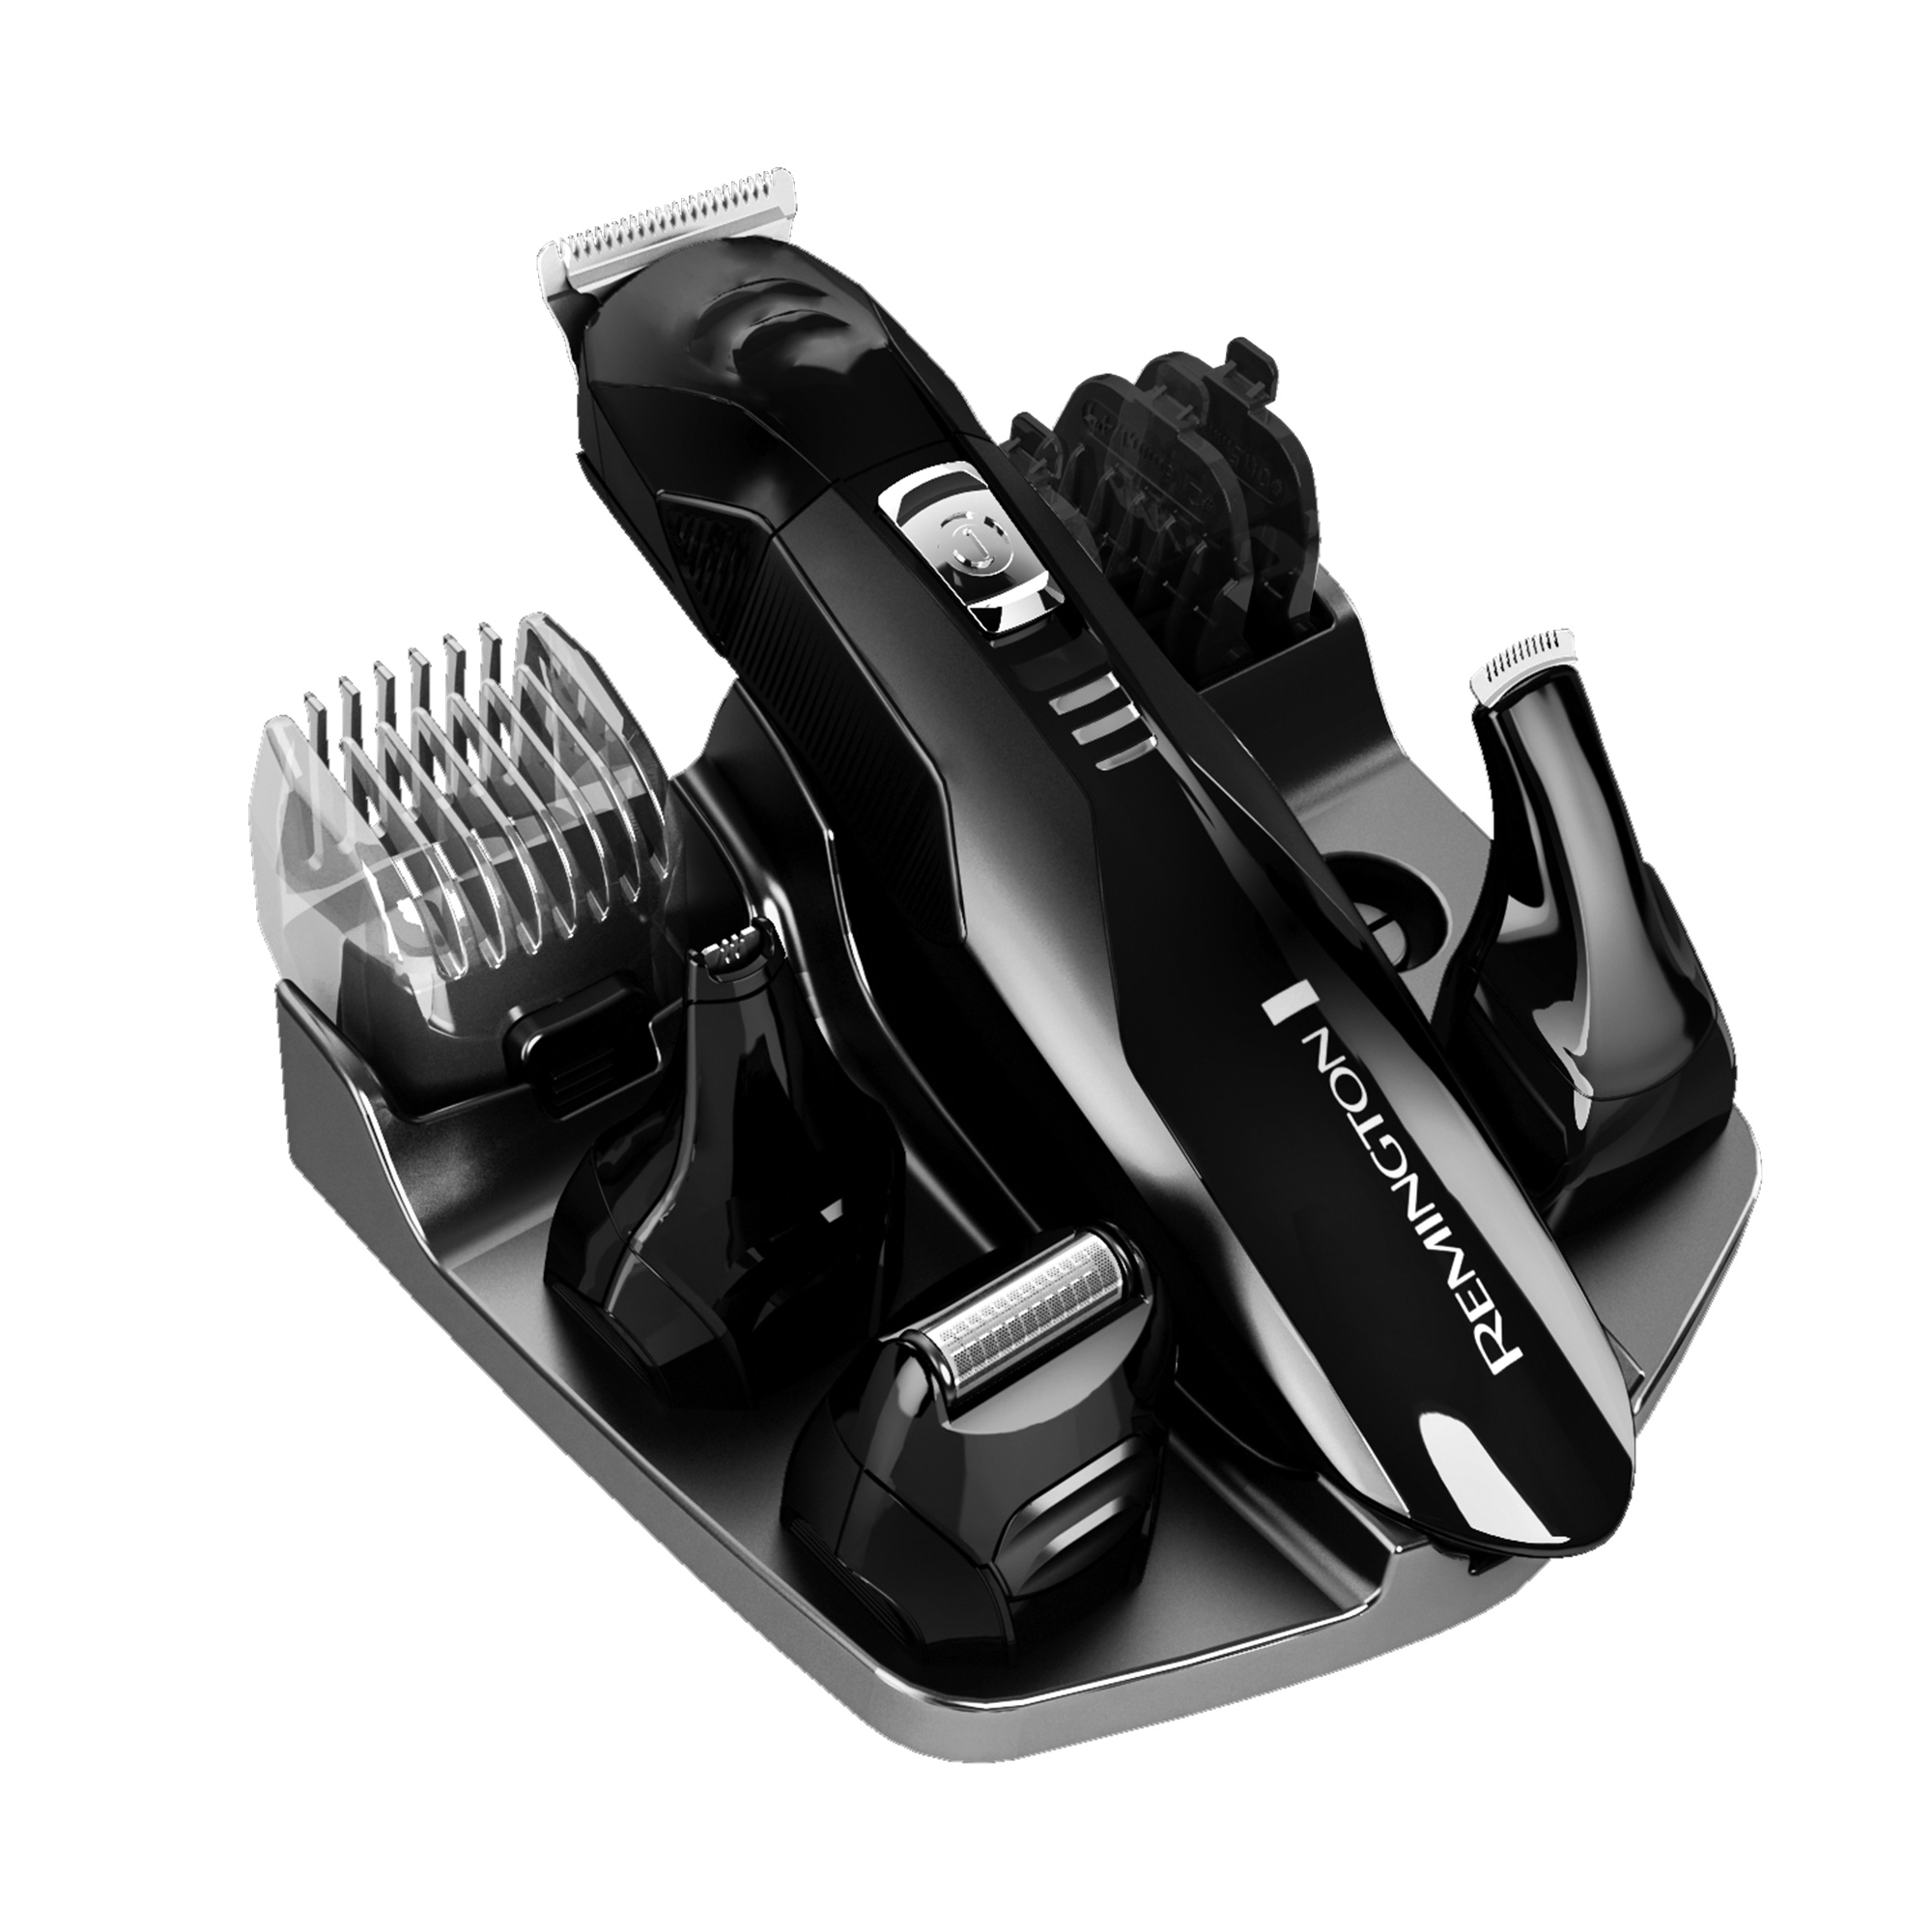 All-In-1 Grooming System with Deluxe Charging Stand